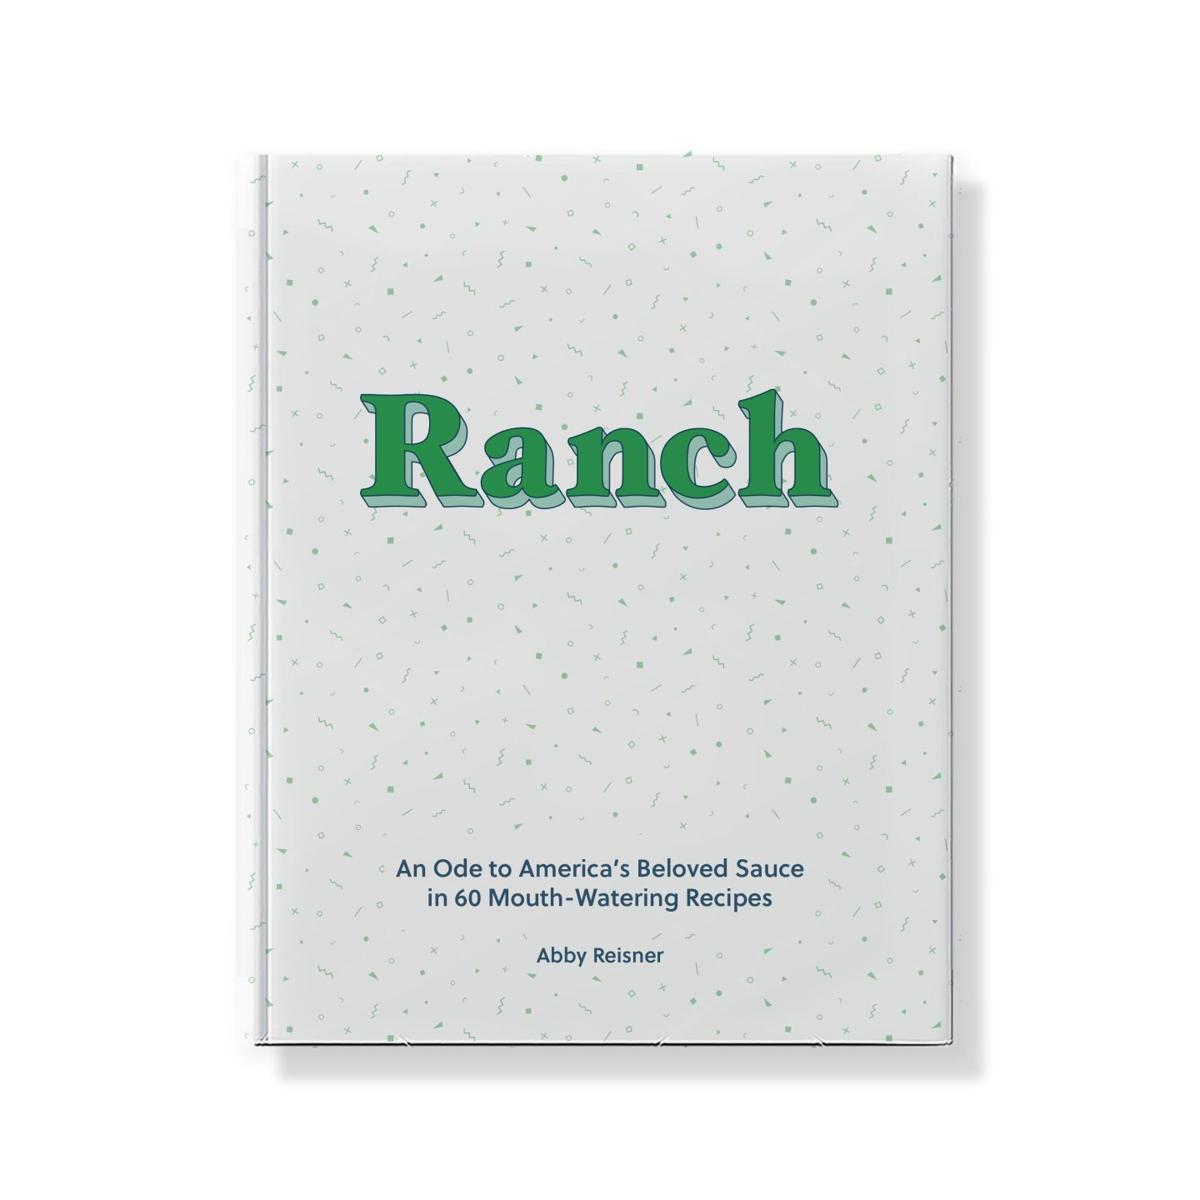 Stephen Fries: From Hidden Valley to household name, ranch a versatile favorite